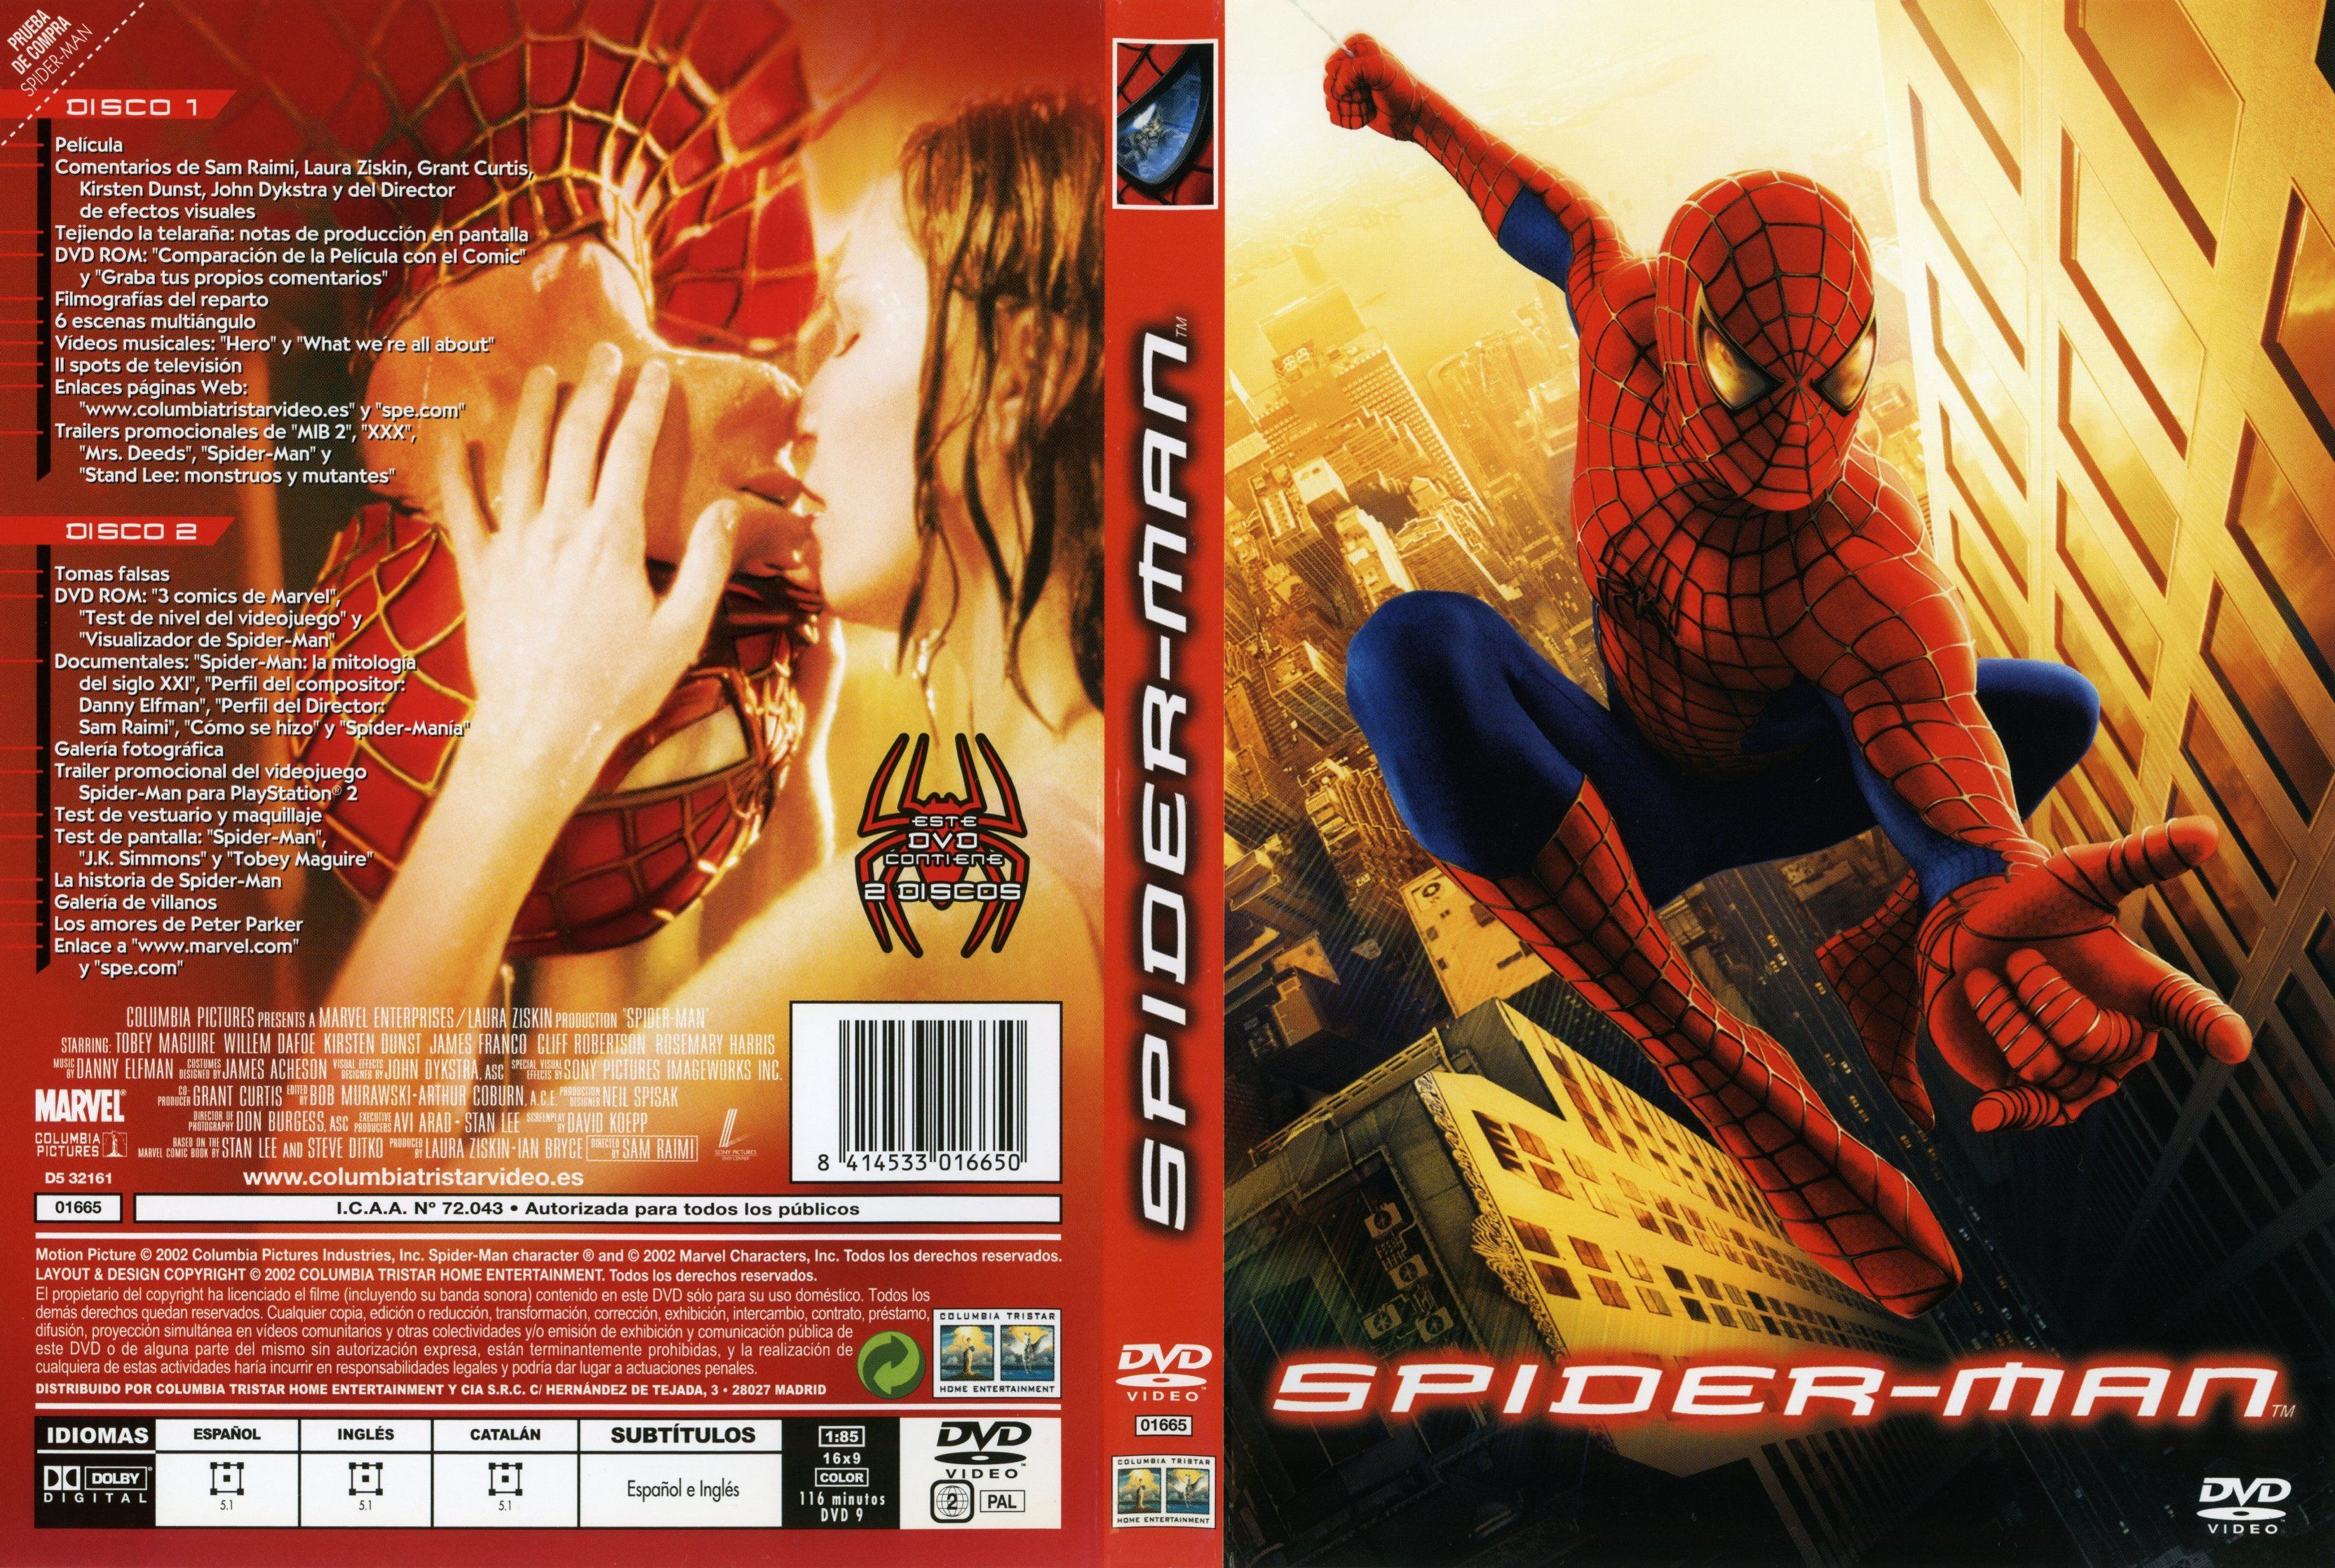 Spider Man 1 DVD Cover